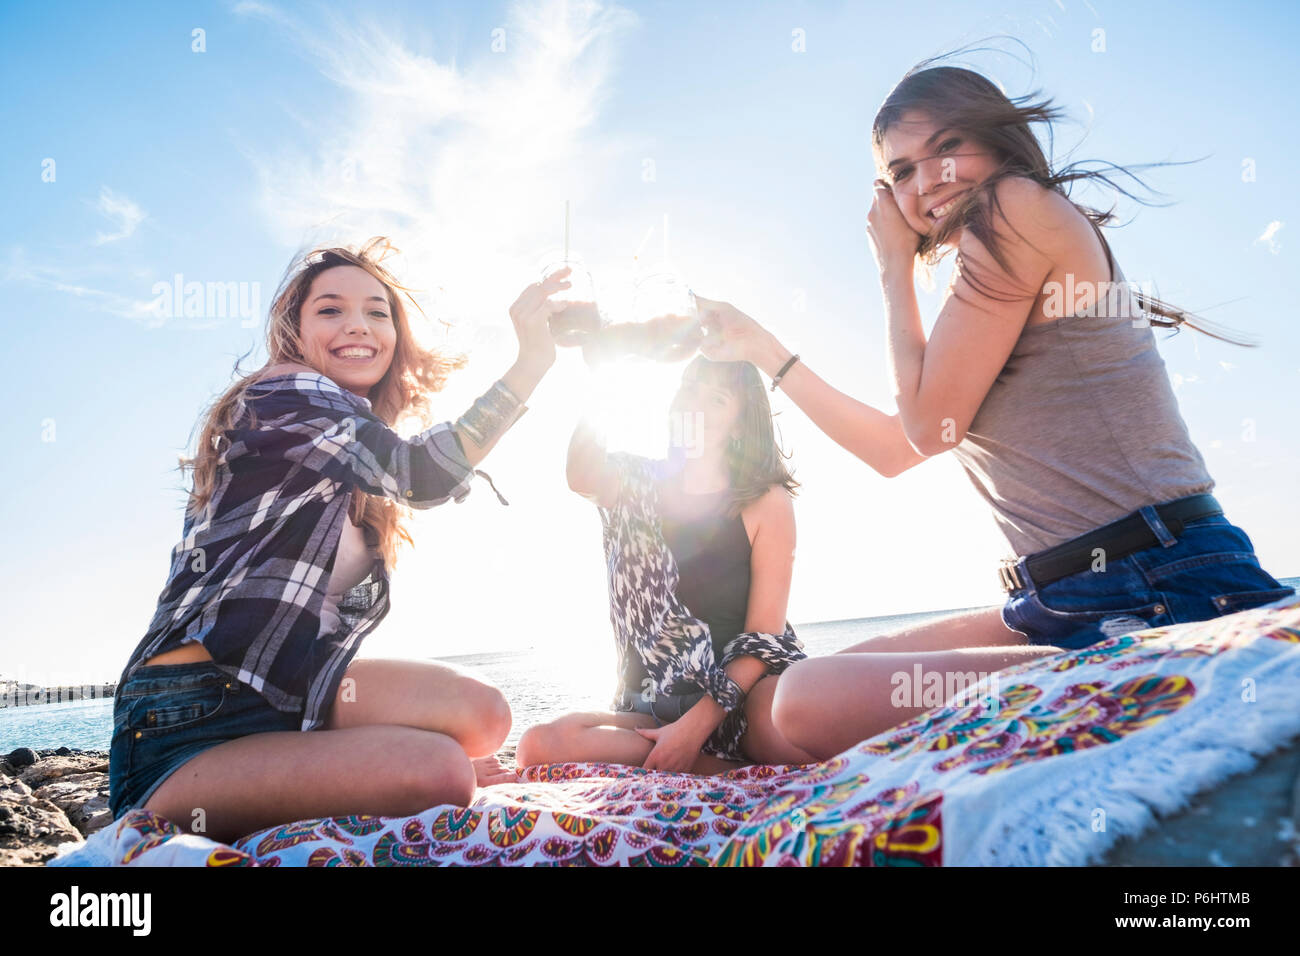 group of young women friend drinking together a fruit juice on a rock beach in Tenerife. Relationship for a team to enjoy the vacation and happiness.  - Stock Image